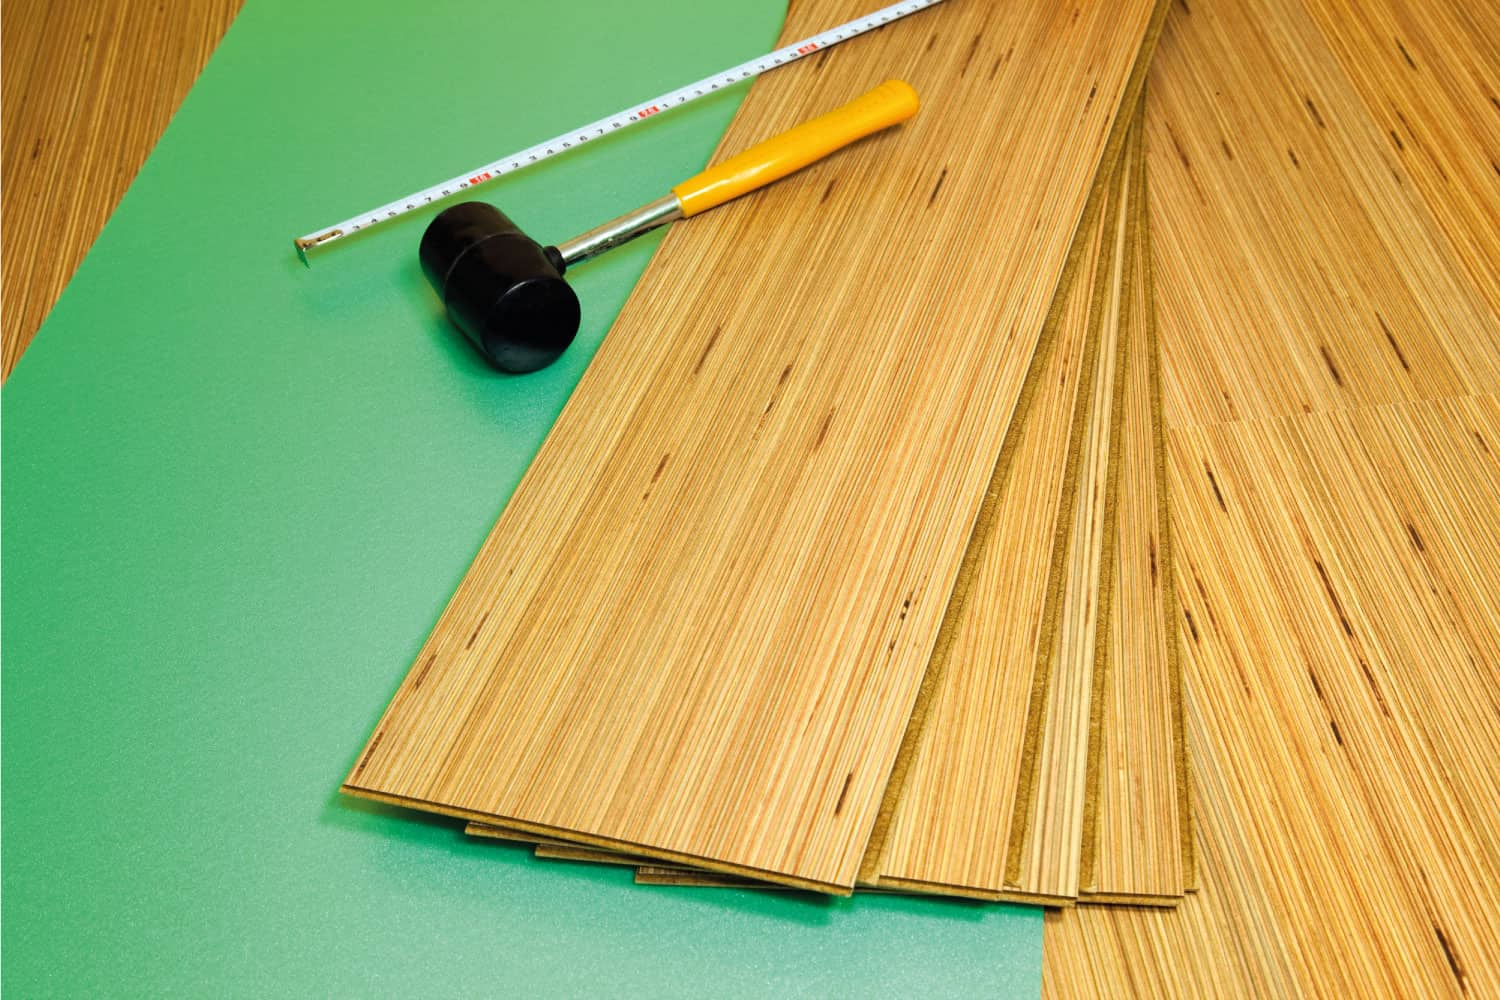 Laminate carpentry, light-brown laminate wood style flooring with rubber mallet